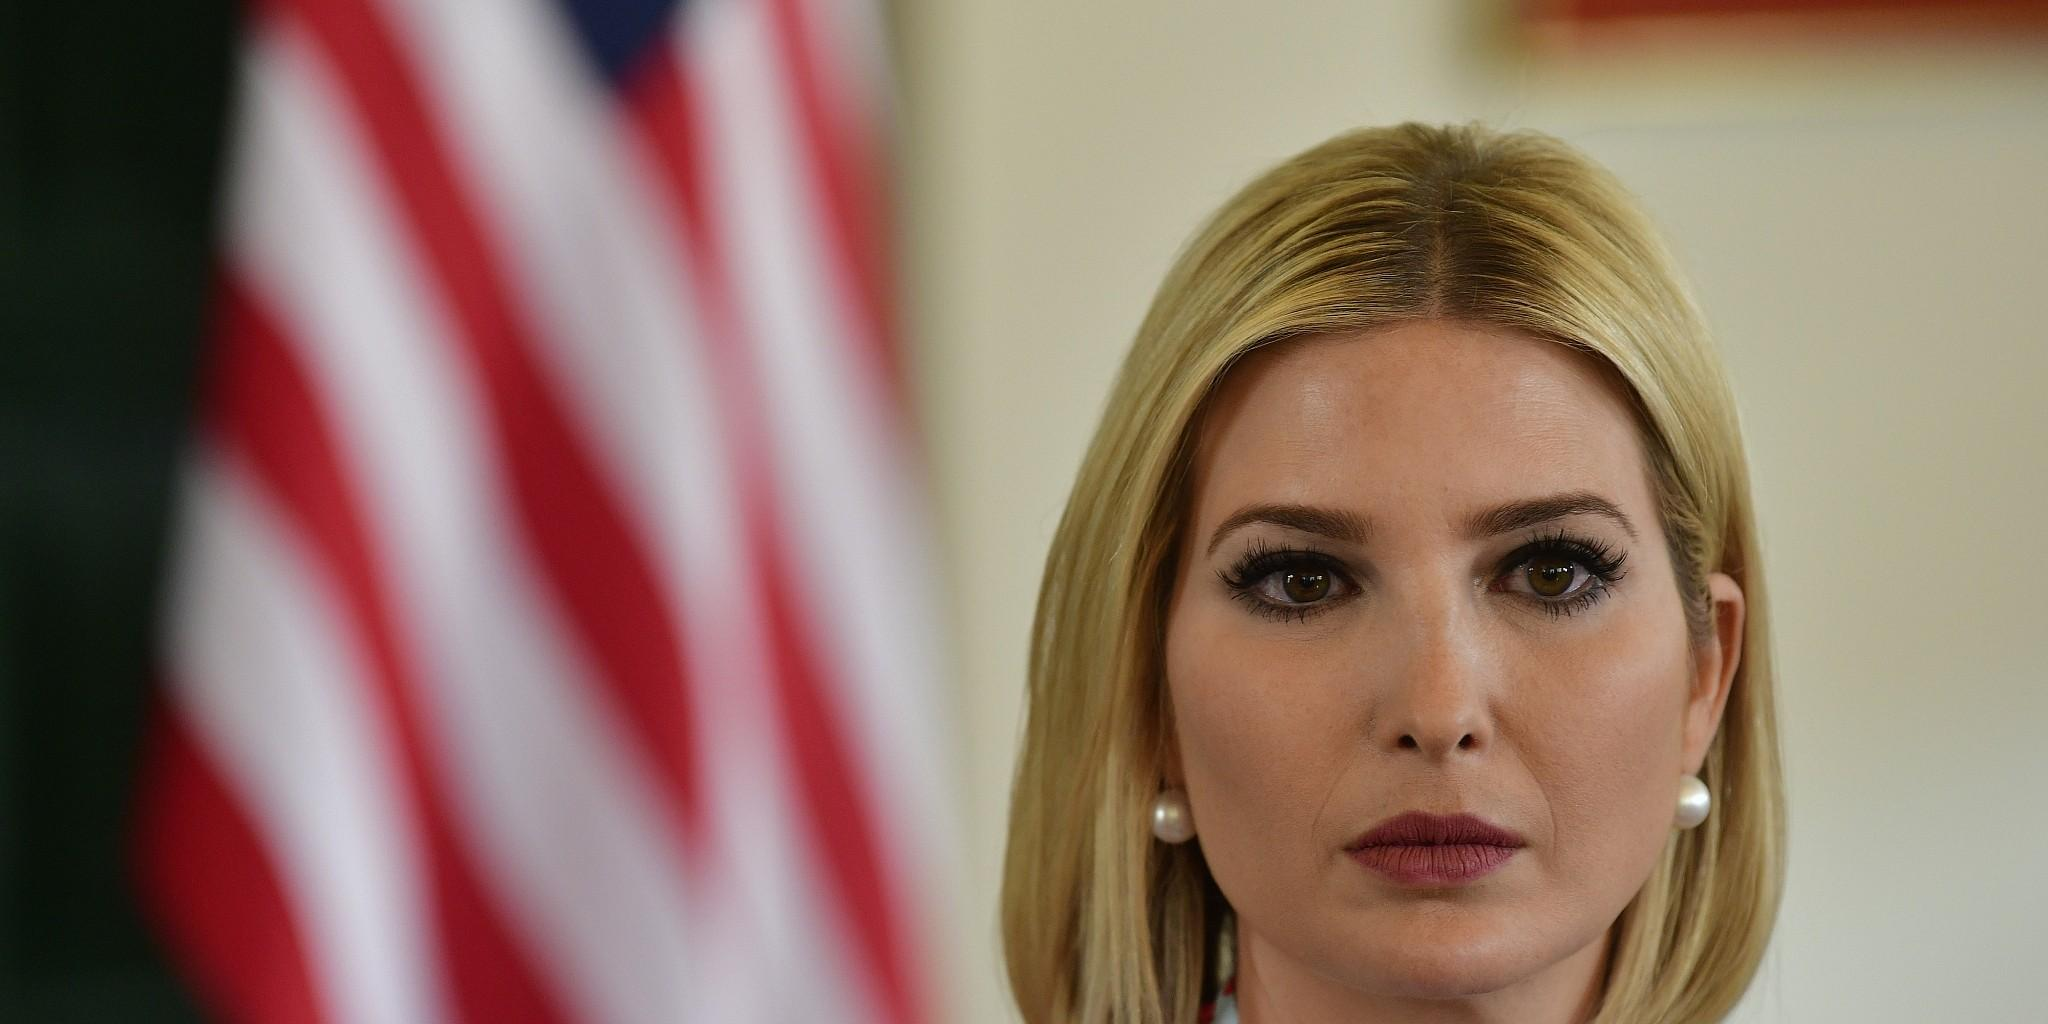 Ivanka Trump Critics Outraged By Her Kids Washing Their Hands With $40 Soap Despite Over 3 Million Americans Losing Jobs Amid COVID-19 Crisis